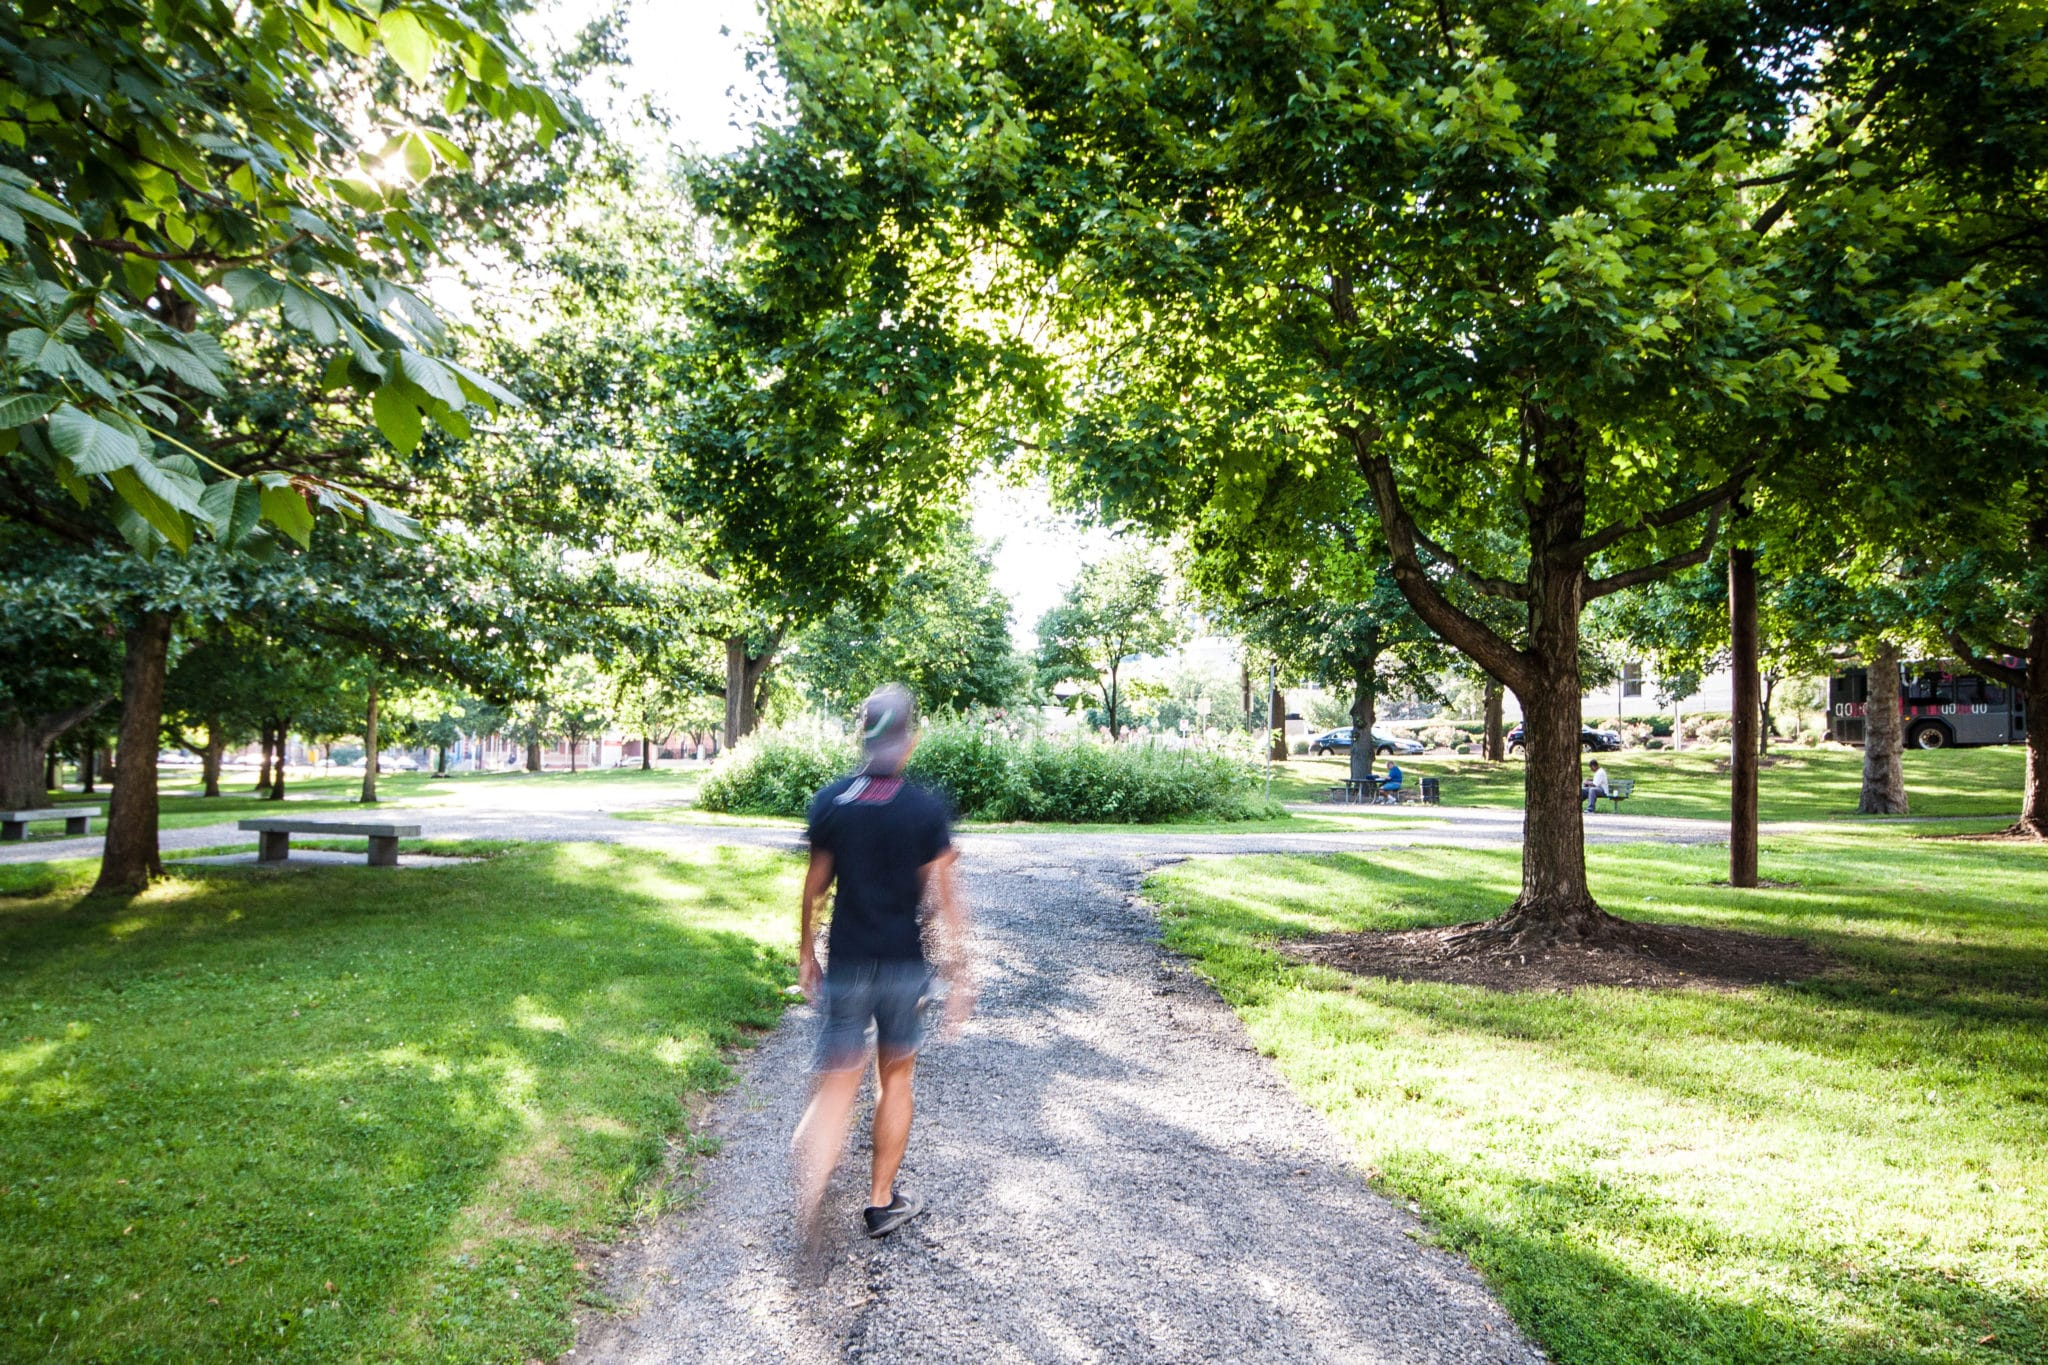 A man walking through Allegheny Commons Park